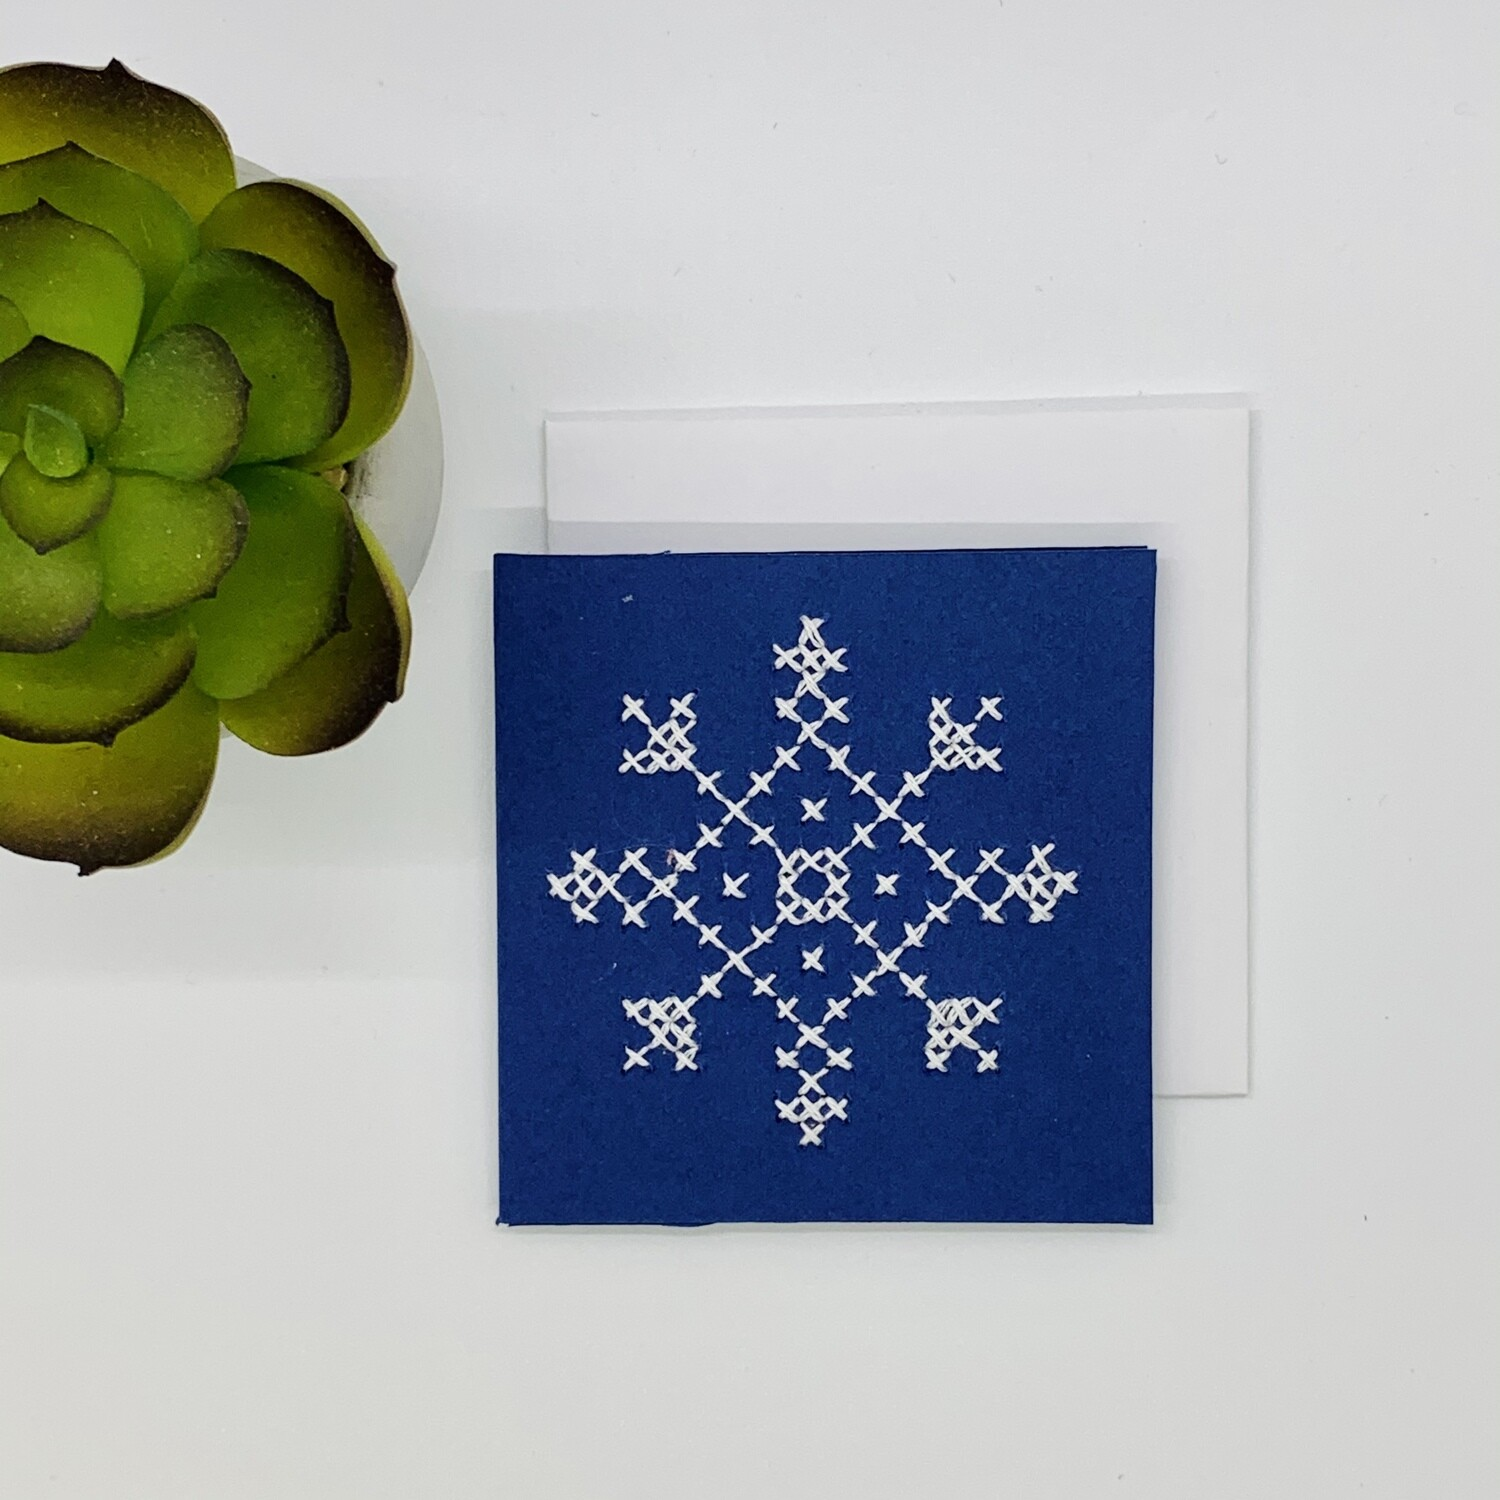 Small Card, White Snowflake Cross-stitch on Dark Blue